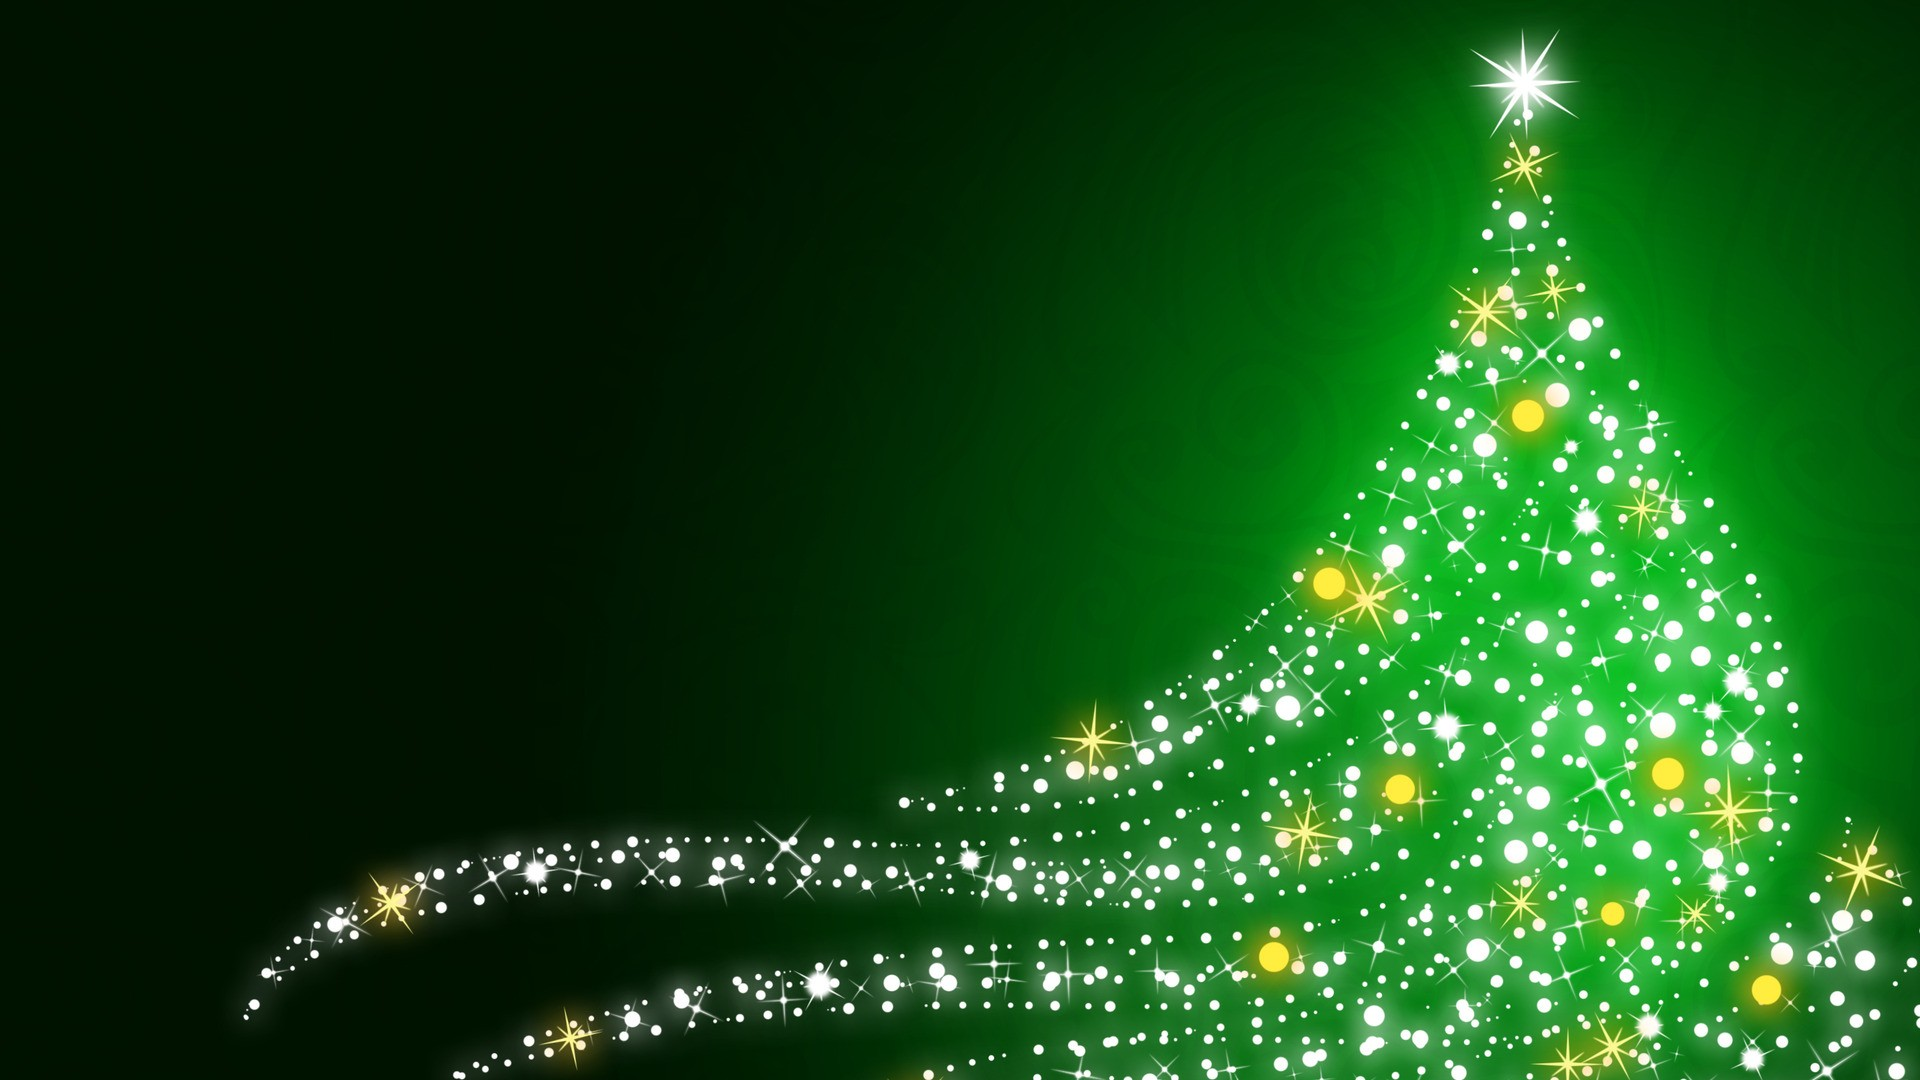 Xmas Wallpaper 1 Download Free Awesome Wallpapers For Desktop And